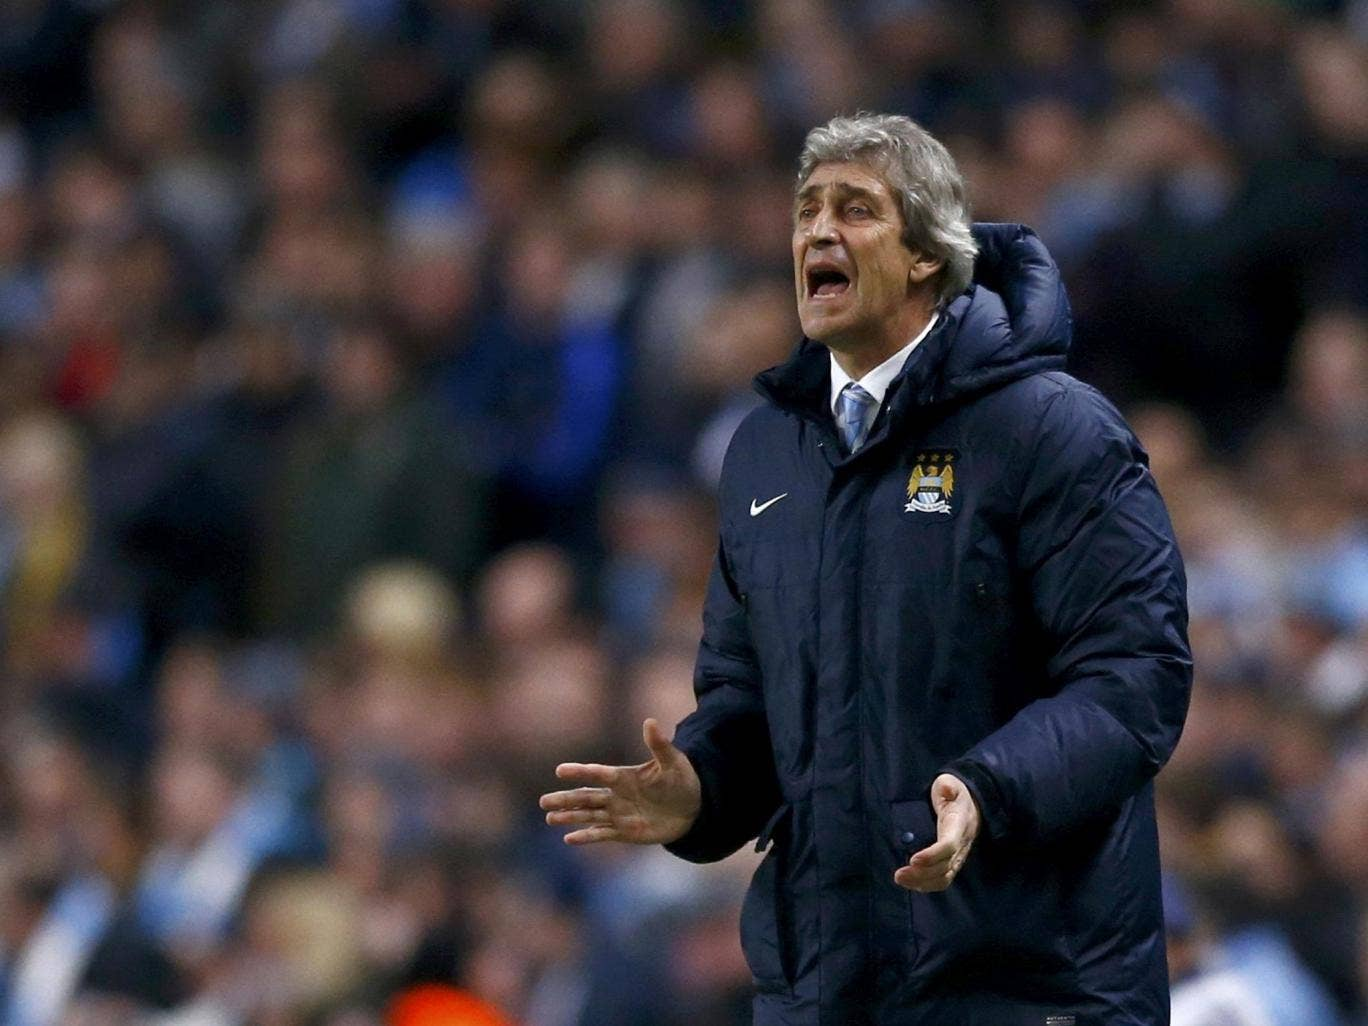 Manuel Pellegrini said Jonas Eriksson should not have been referee on Tuesday because he was Swedish